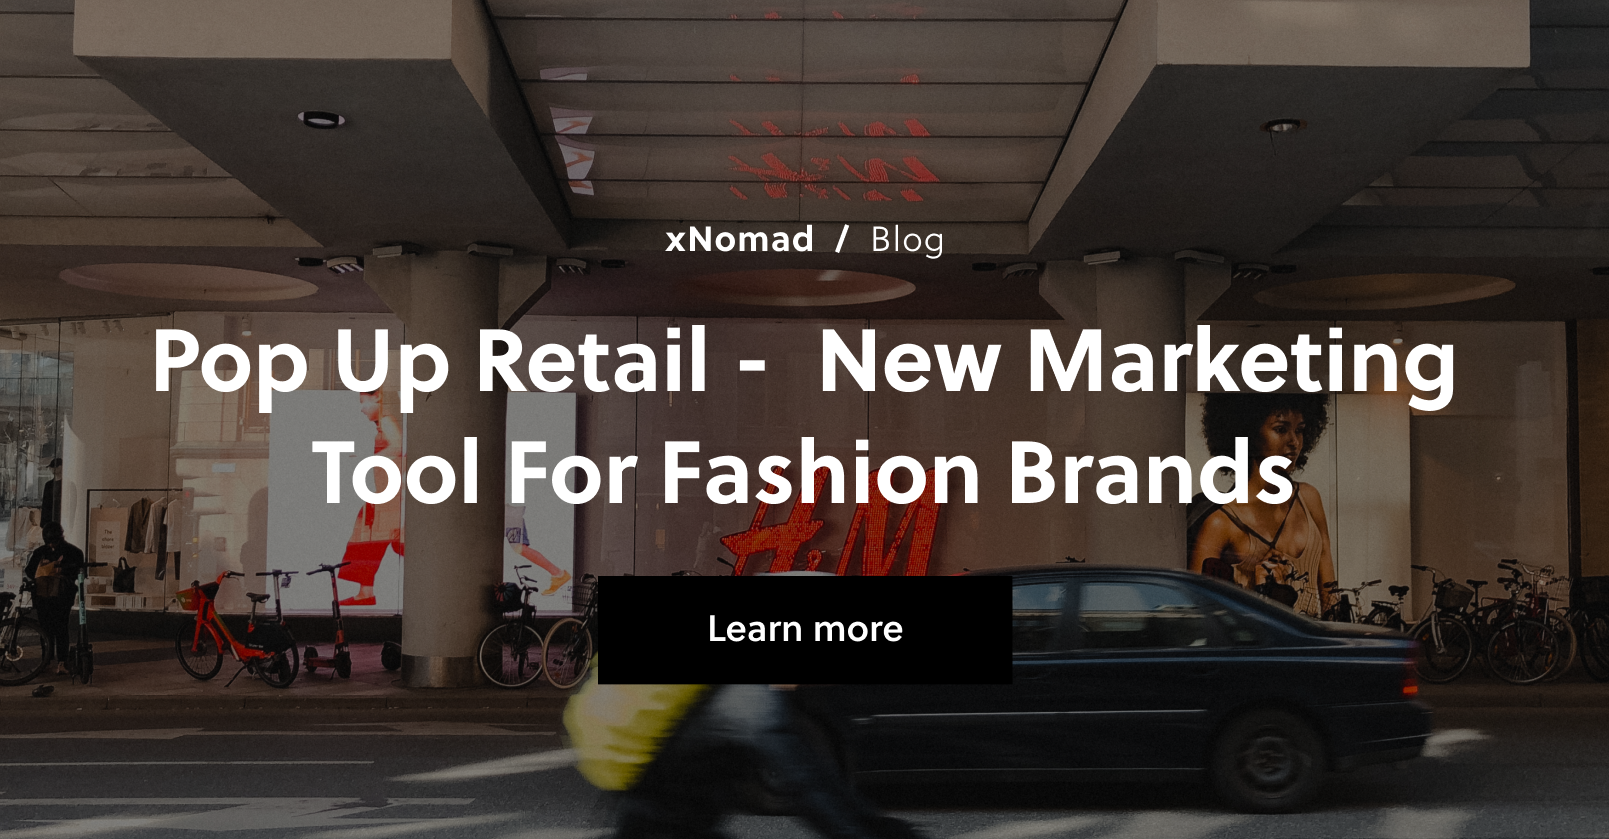 Pop Up Retail - New Marketing Tool for Fashion Brands